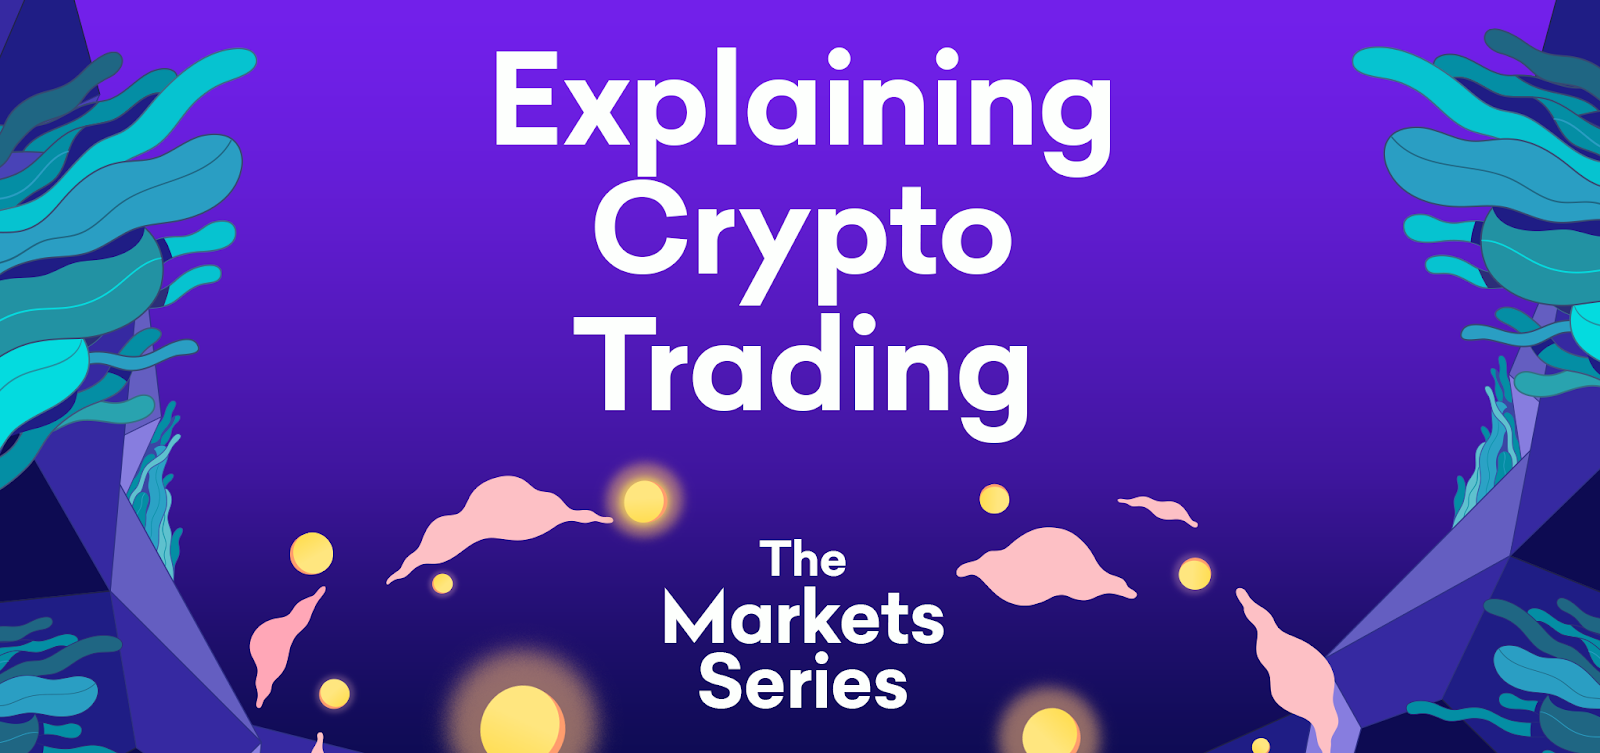 Explaining Crypto Trading